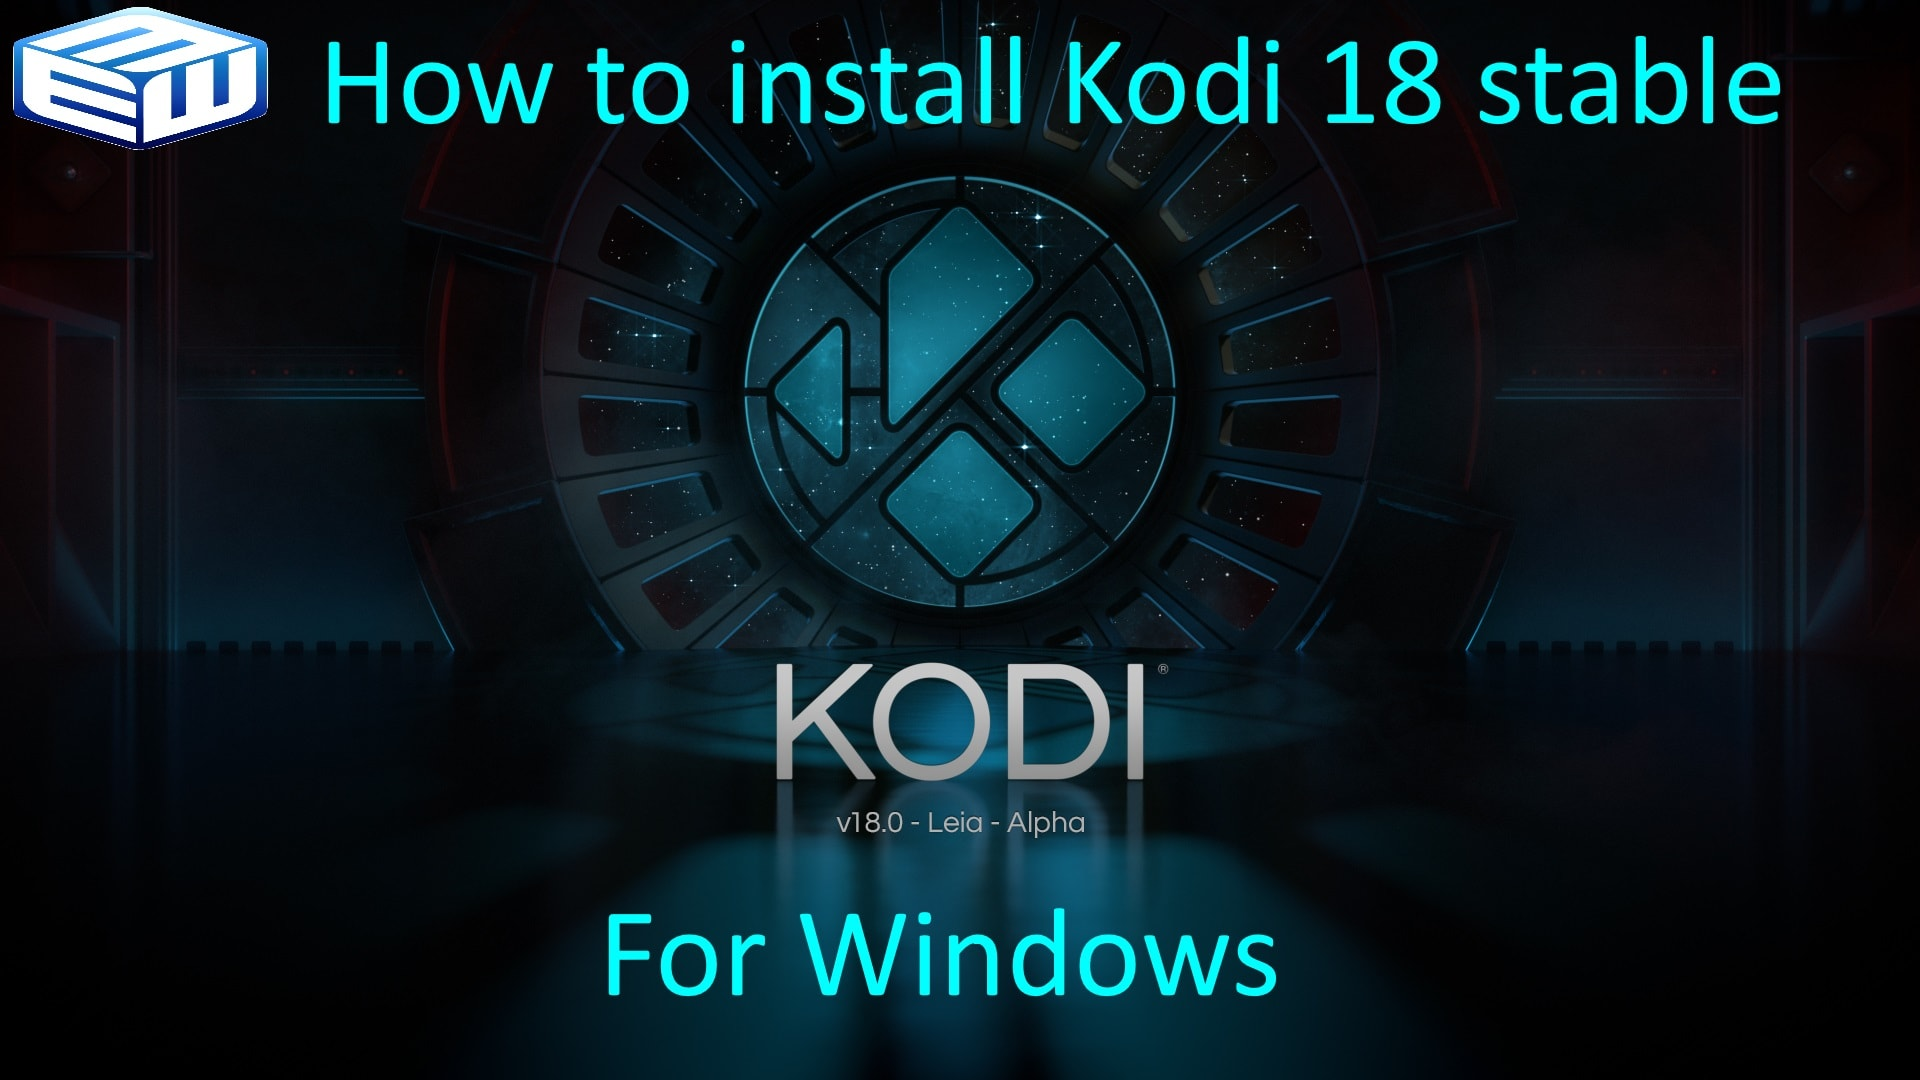 HOW-TO Install Kodi 18.0 update for Windows Kodi Leia 18 stable release